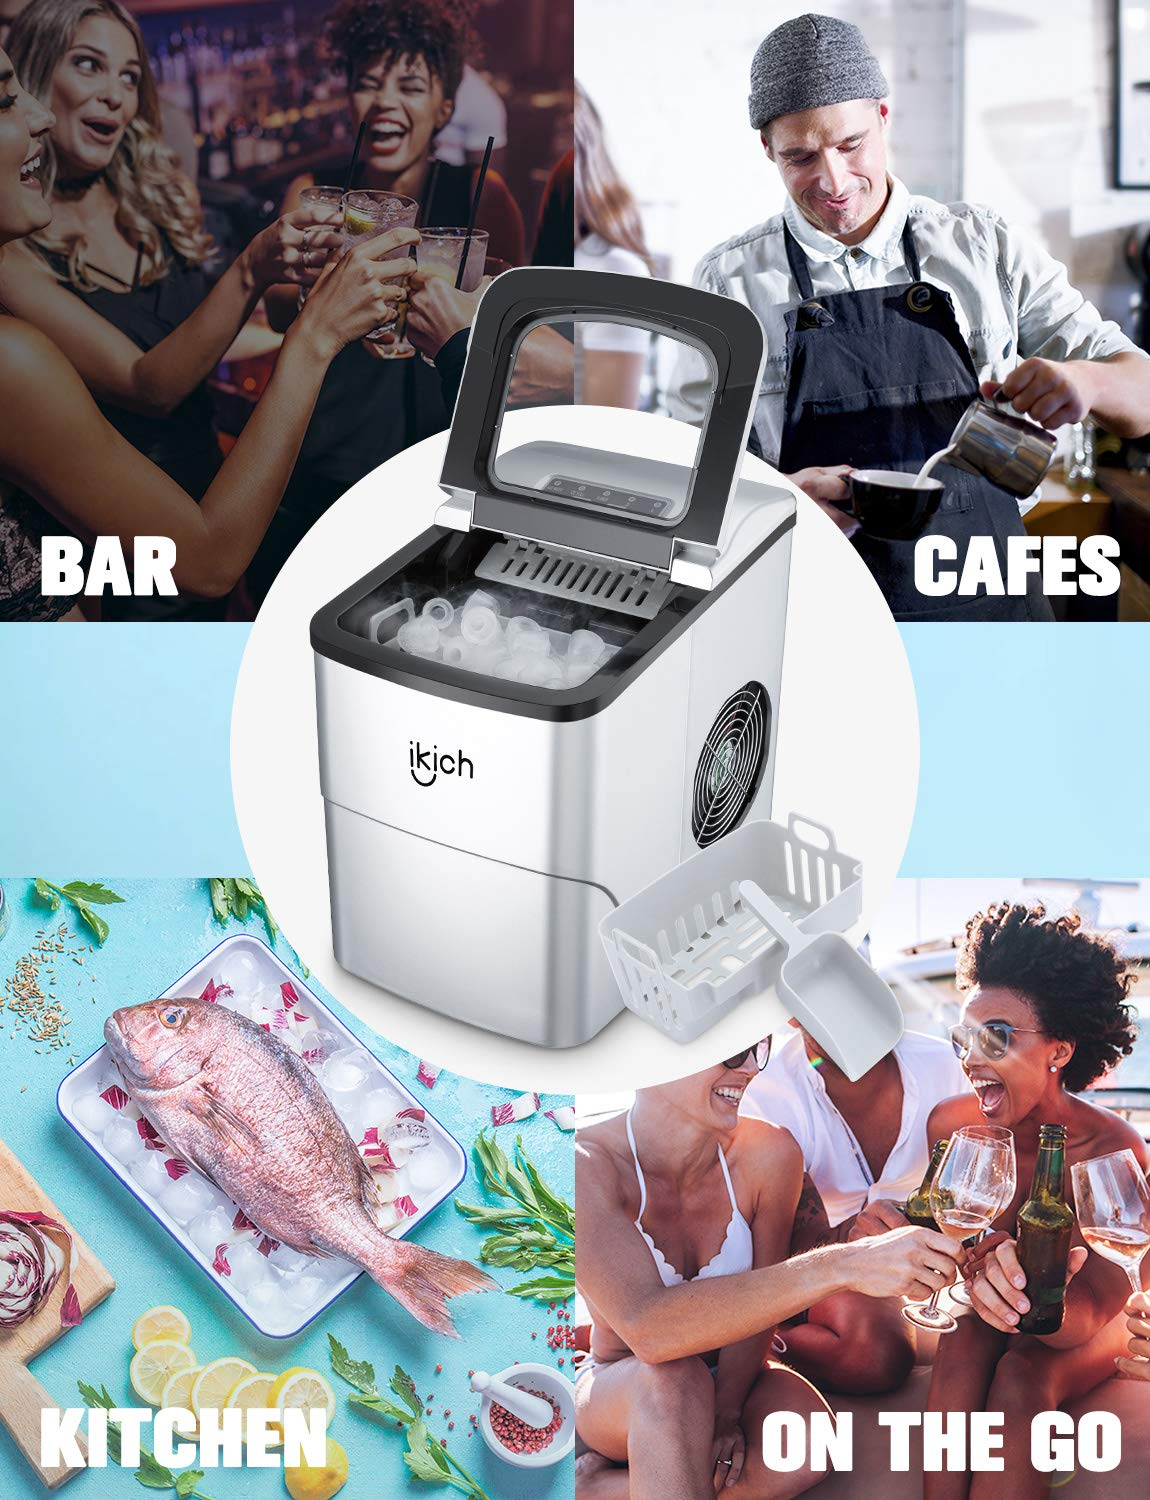 Electric Ice Maker 2L with Ice Scoop and Basket Make 26 lbs Ice in 24 Hrs with LED Display Perfect for Parties Mixed Drinks Ice Cubes Ready in 6 Mins IKICH Portable Ice Maker Machine for Countertop